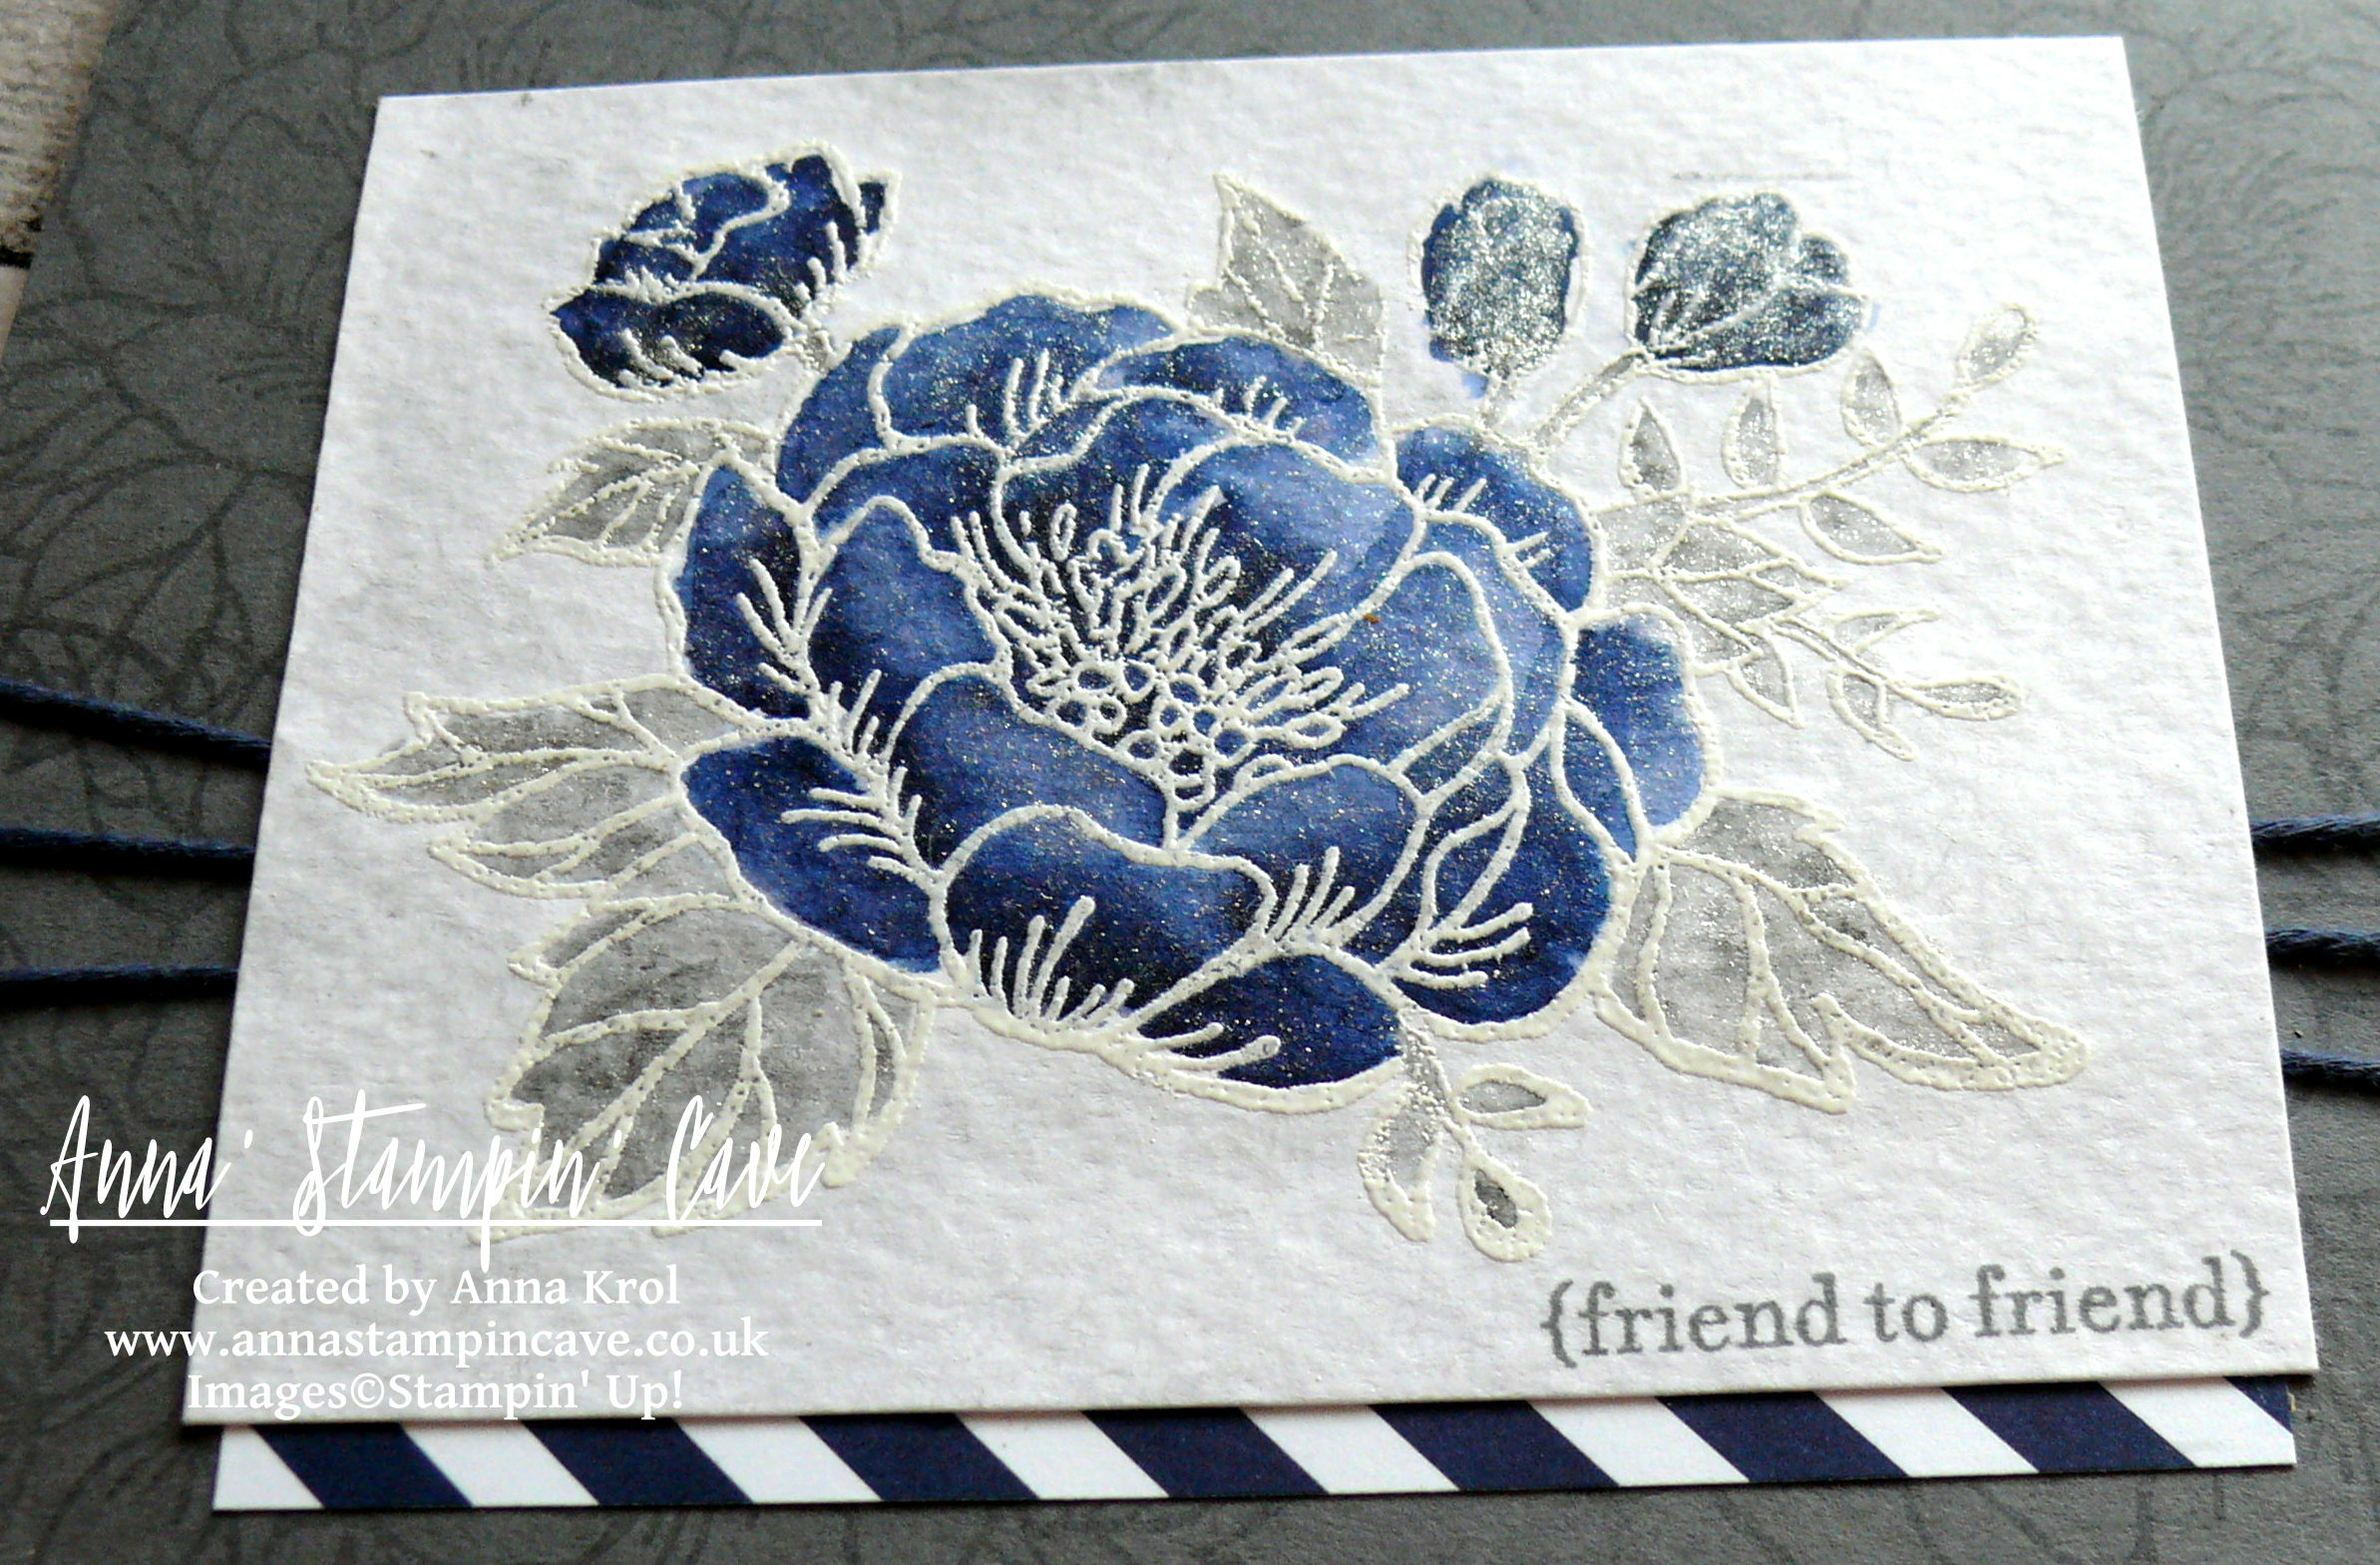 Anna' Stampin' Cave_Stampin' Up! Birthday Blooms Stamp Set_Watercolour Card_Basic Grey Night Of Navy 3.JPG